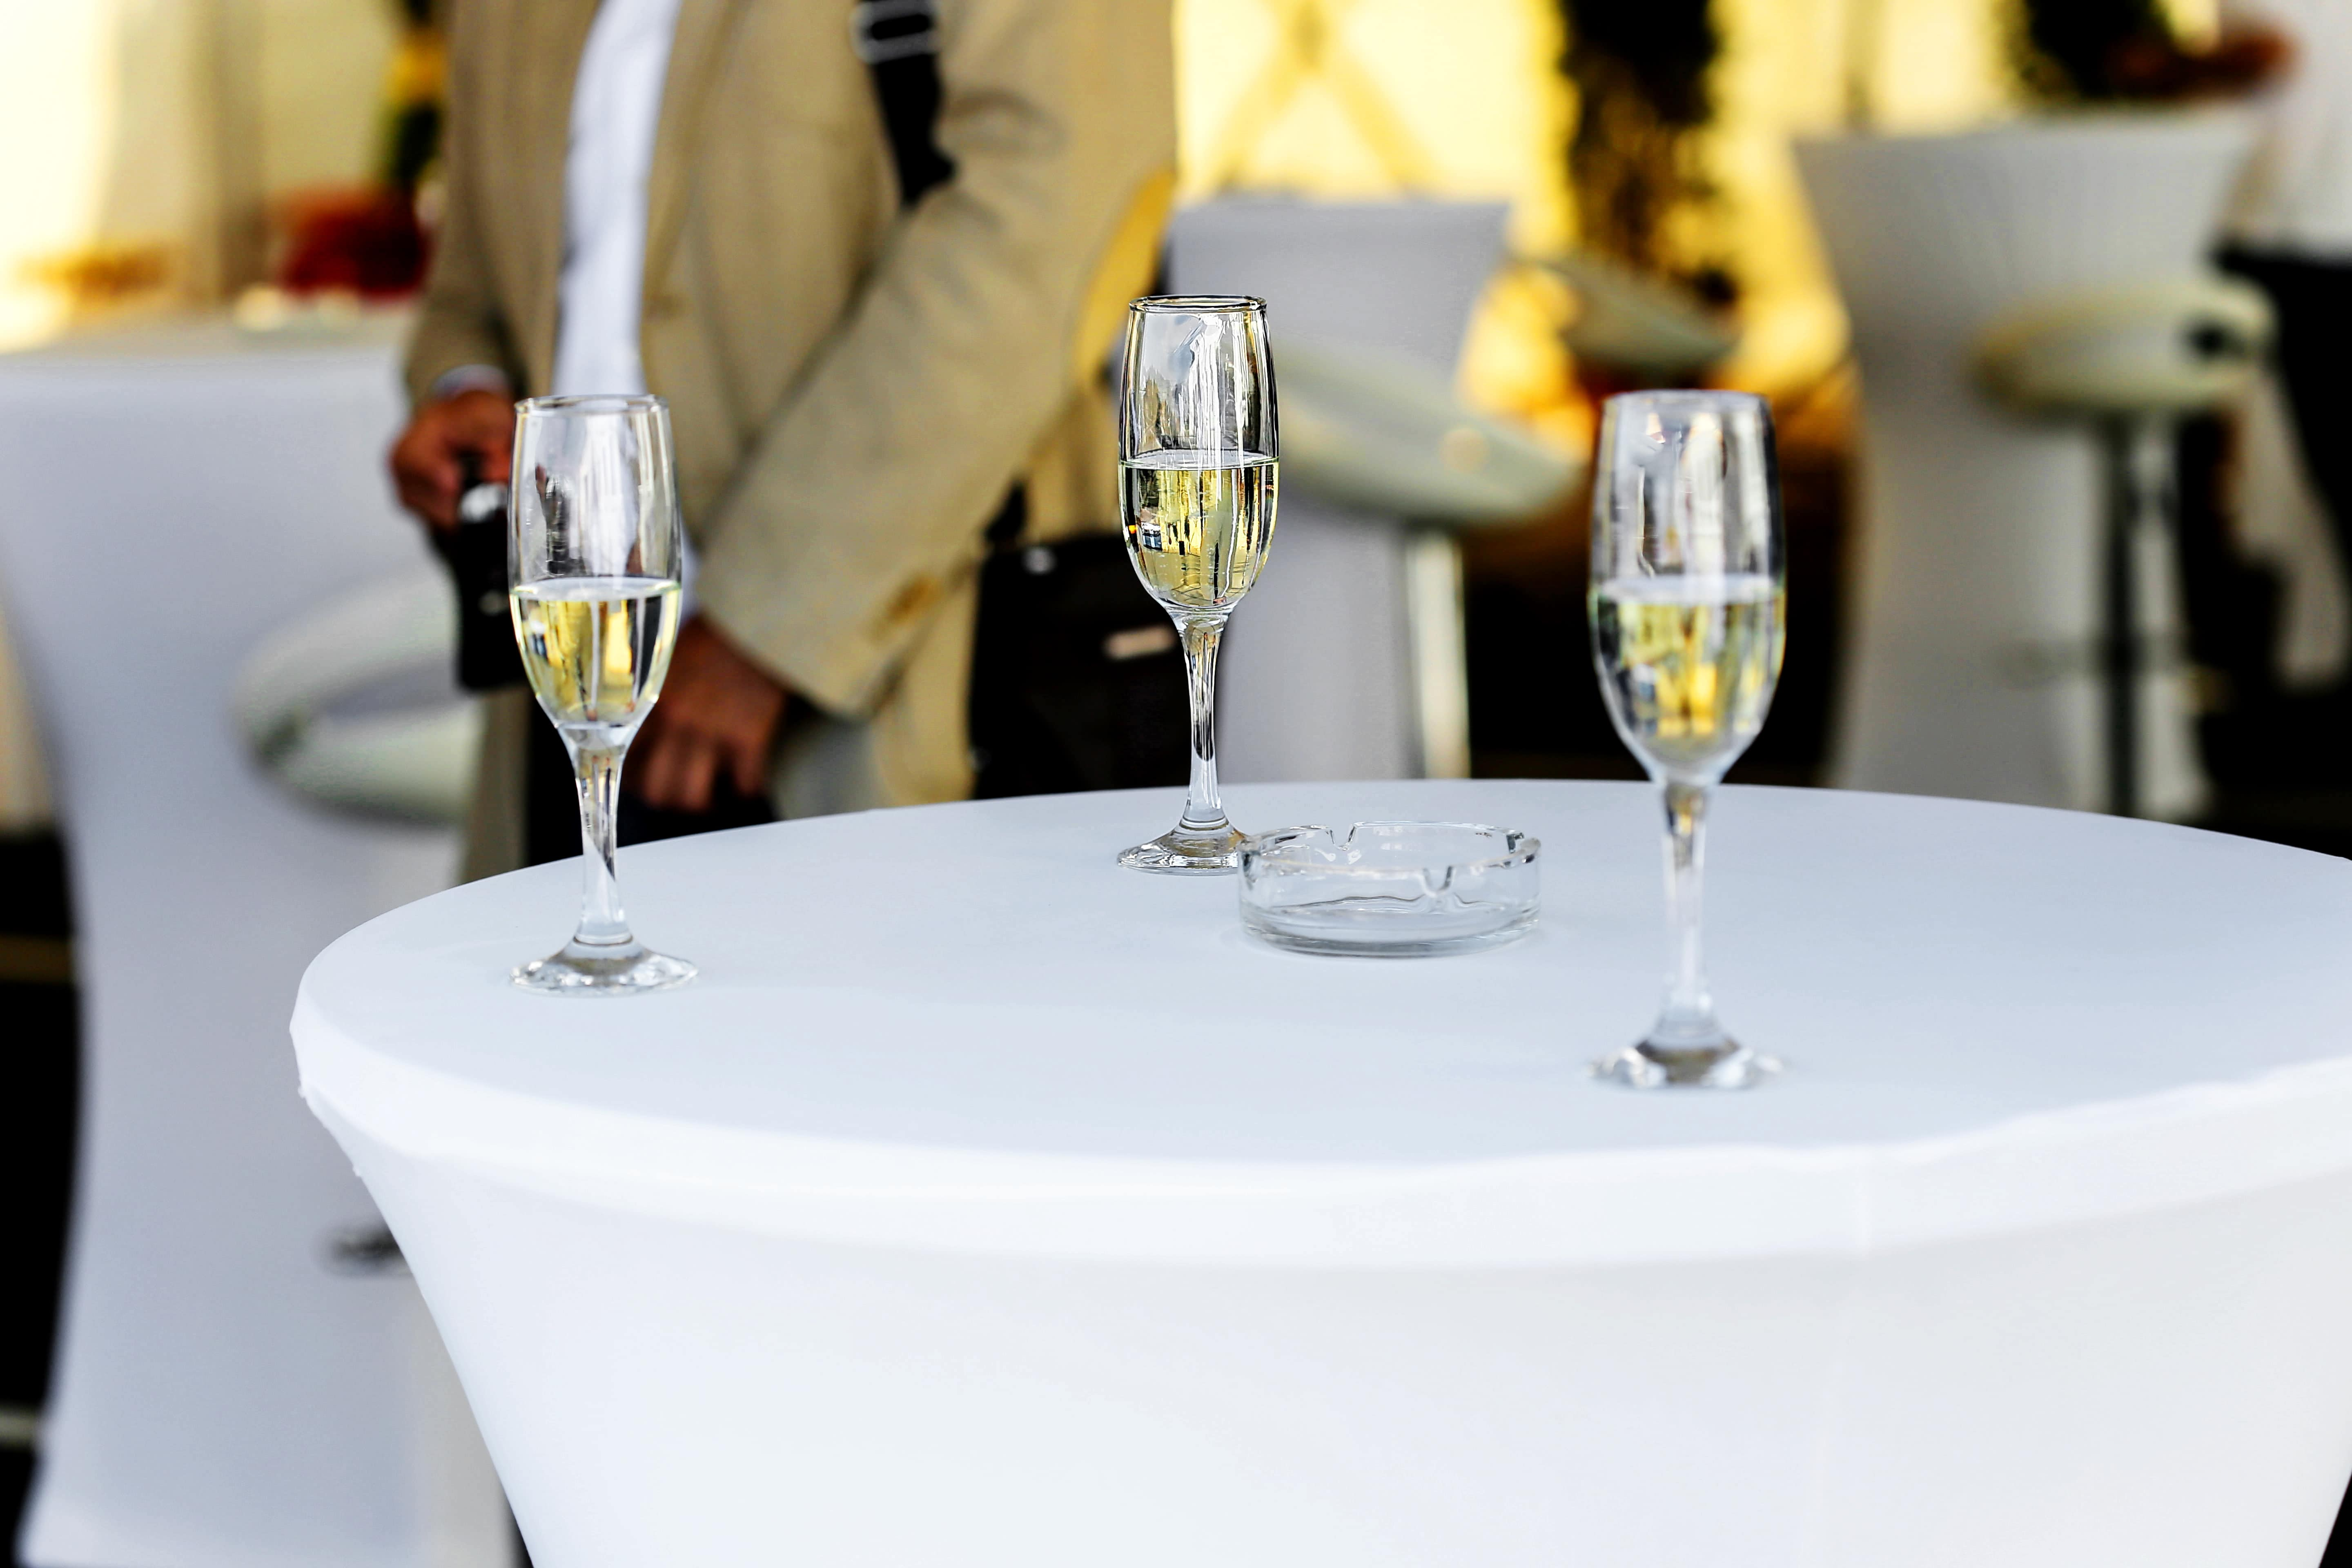 Free Picture Tablecloth Table White Wine Glass Champagne Party Alcohol Wine Dining Drink